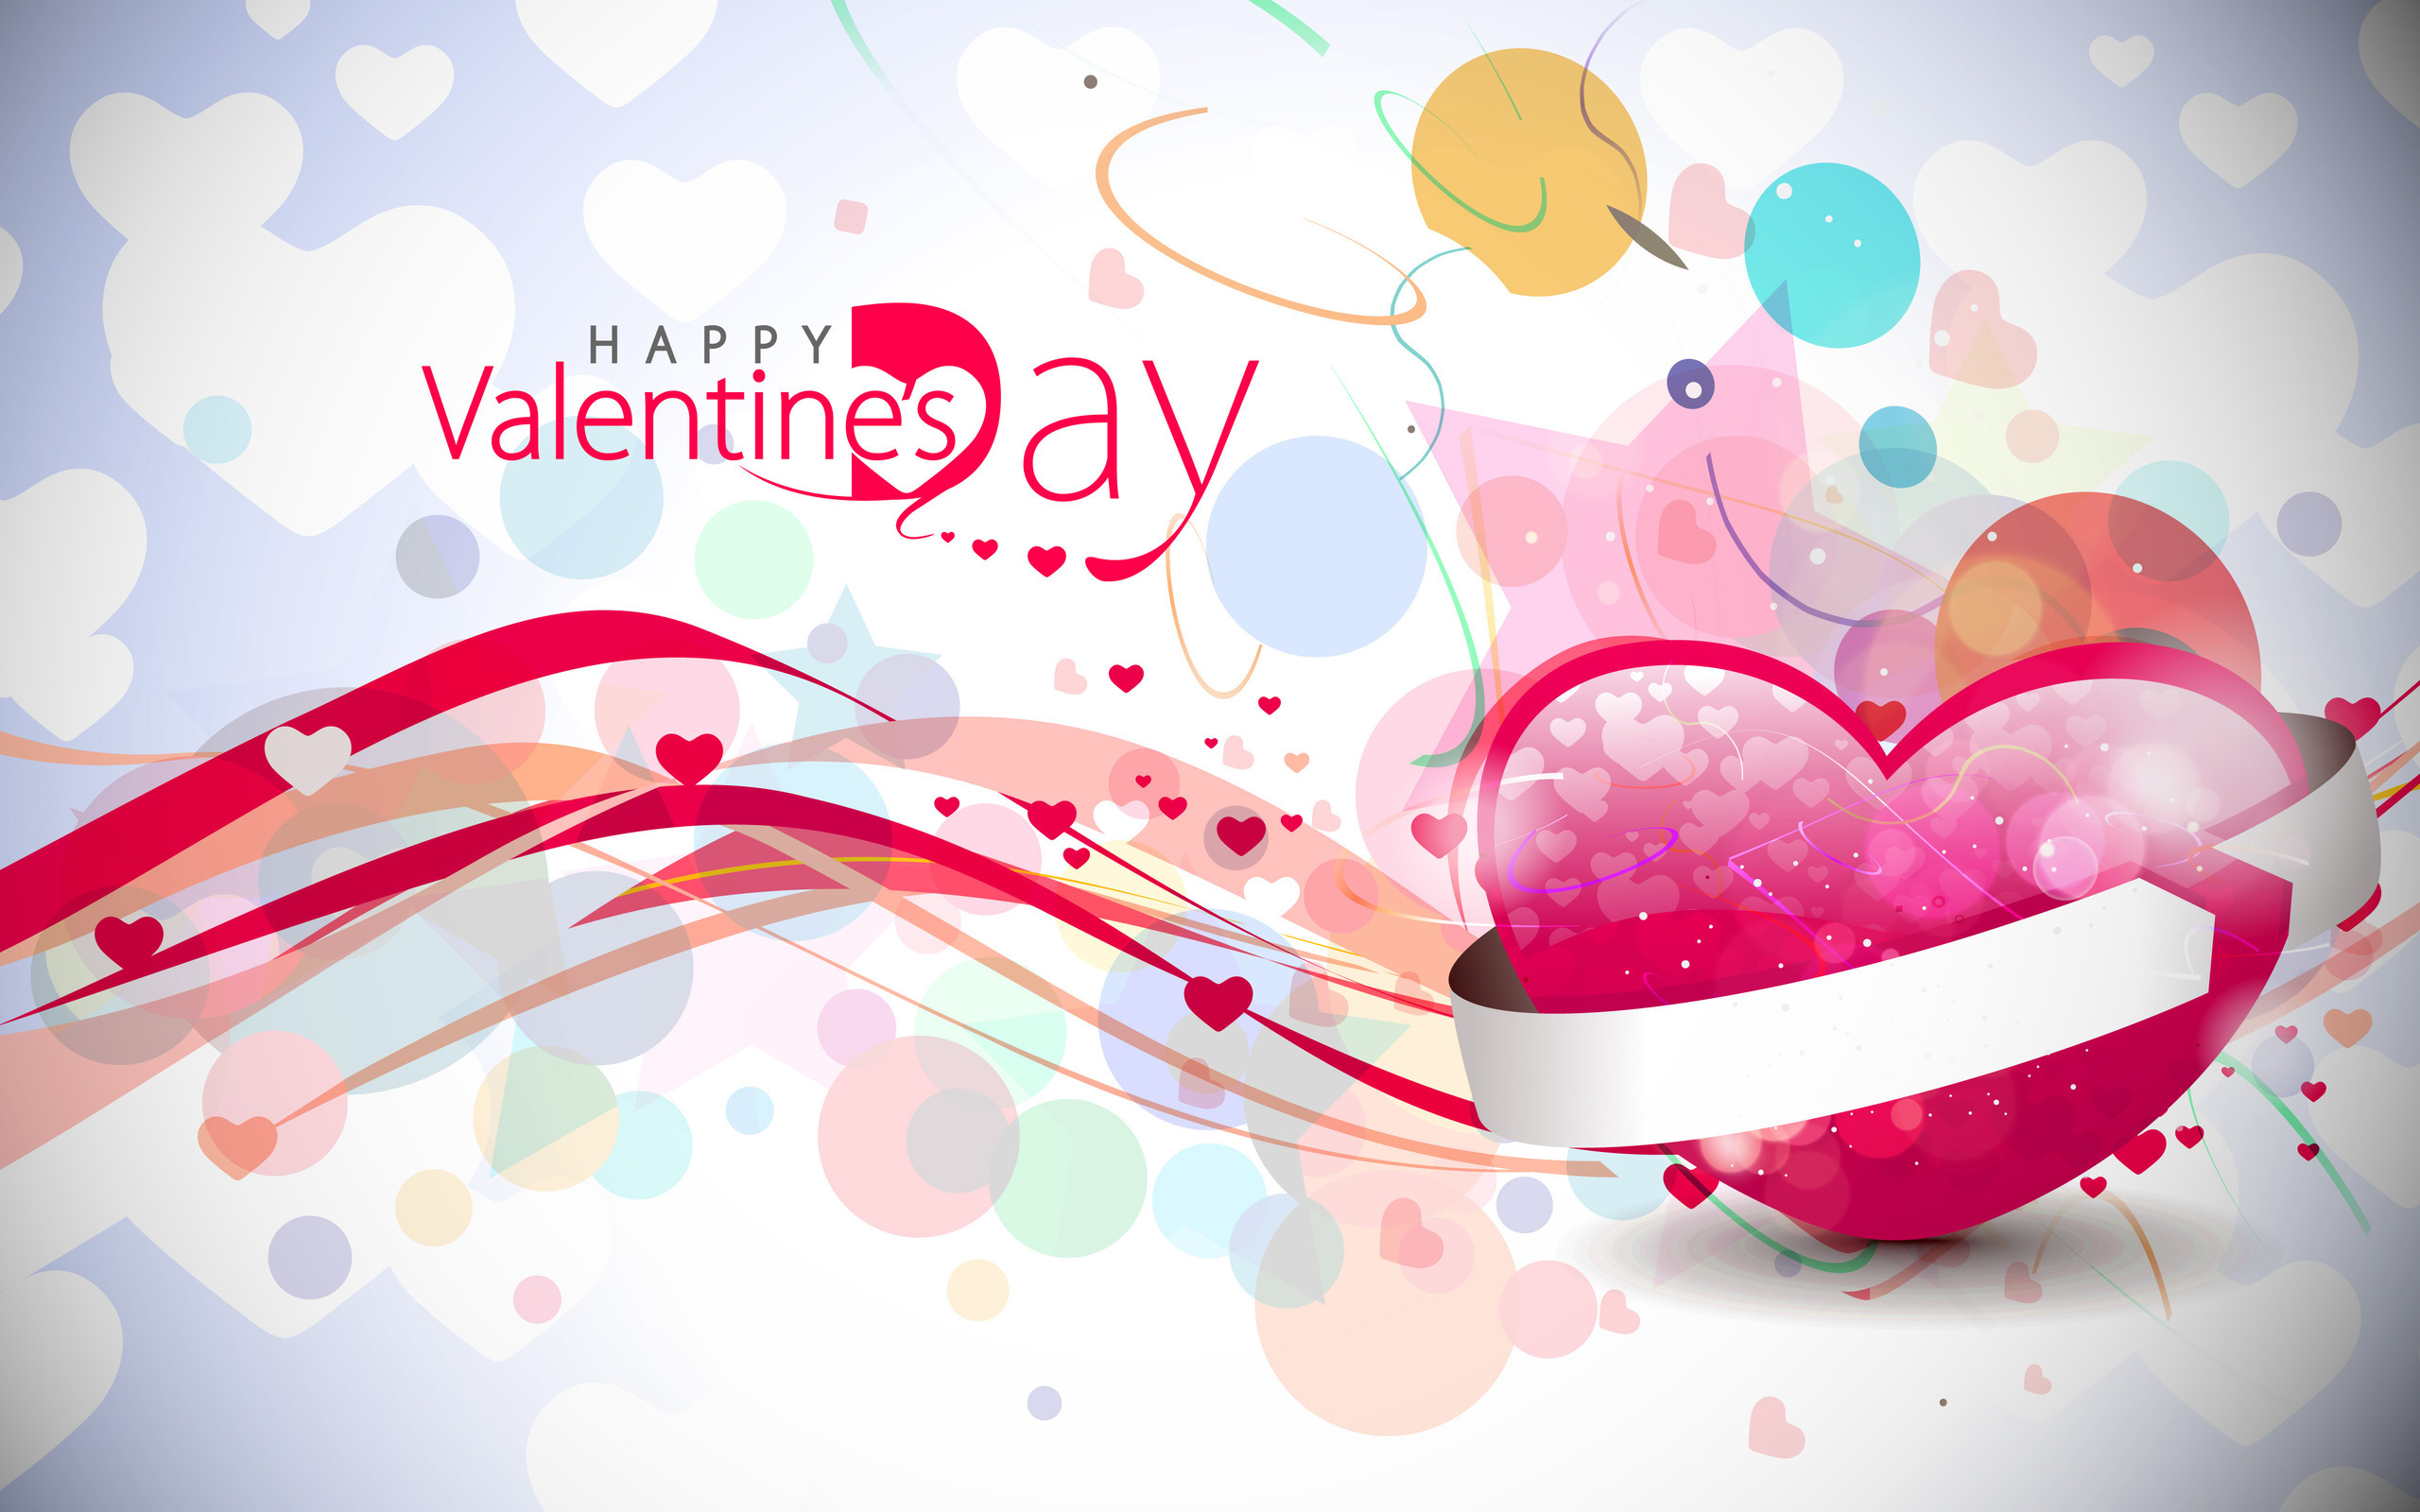 st valentine's day - wallpaper, high definition, high quality, Ideas